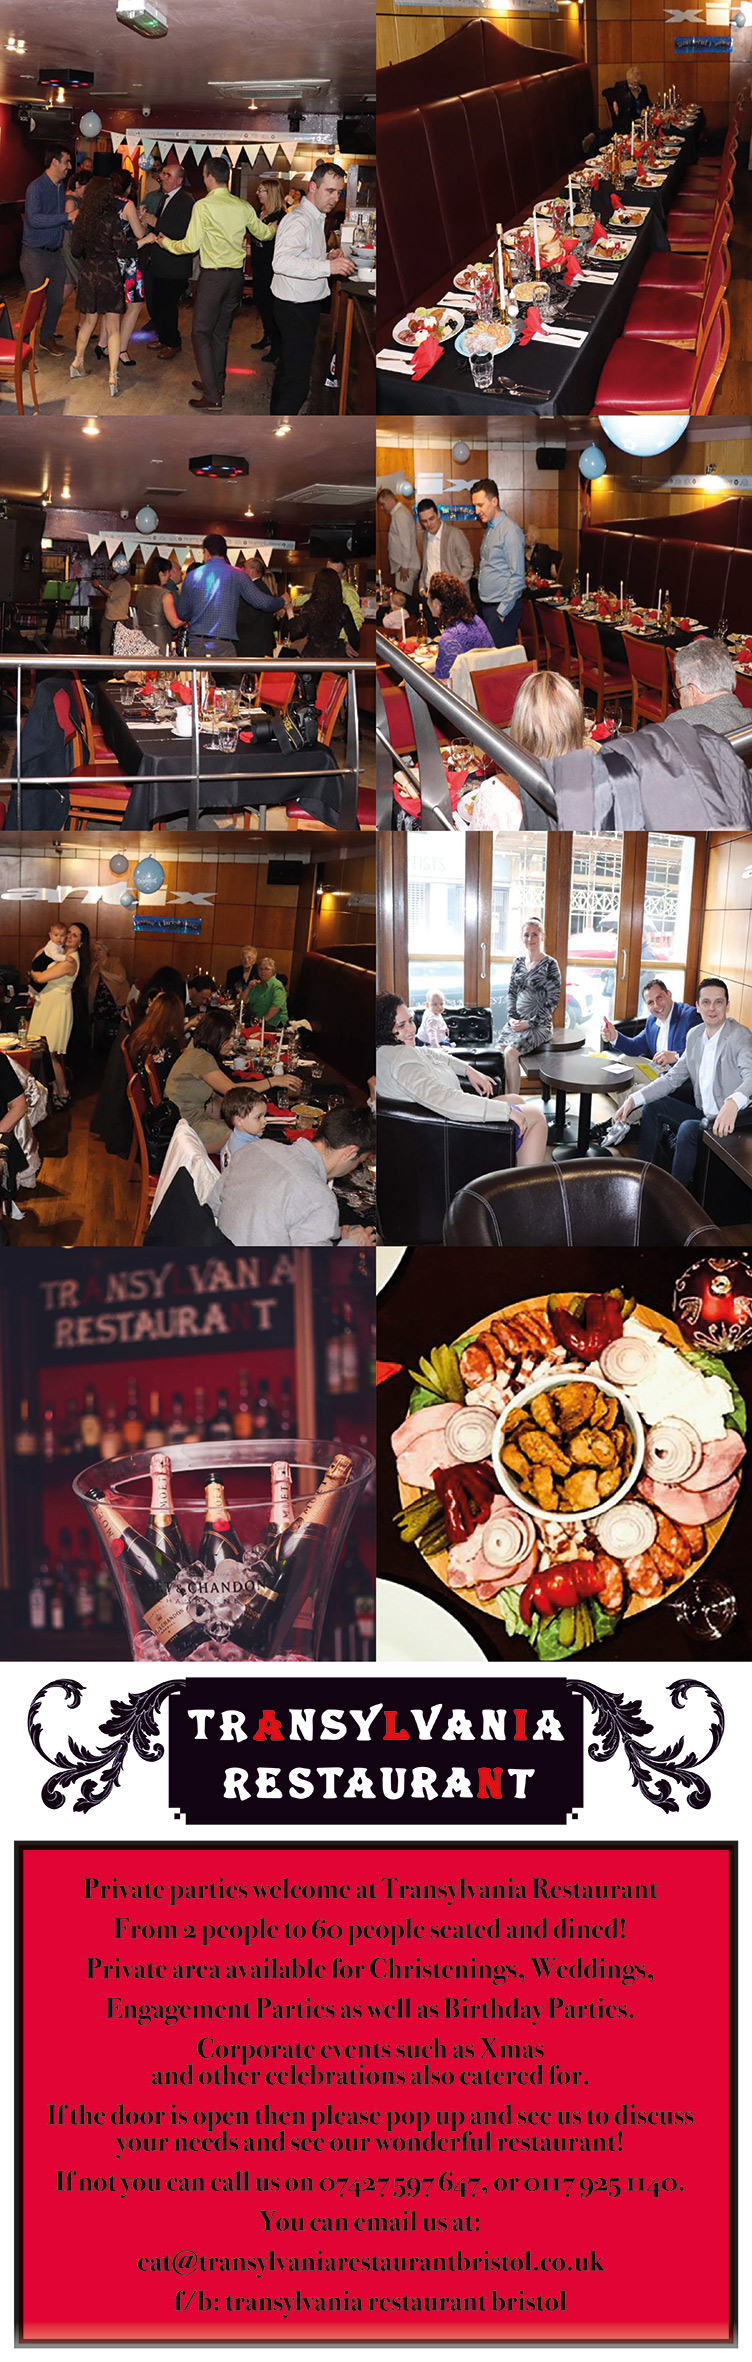 Transylvania Restaurant Bristol – Available for events and private hire!